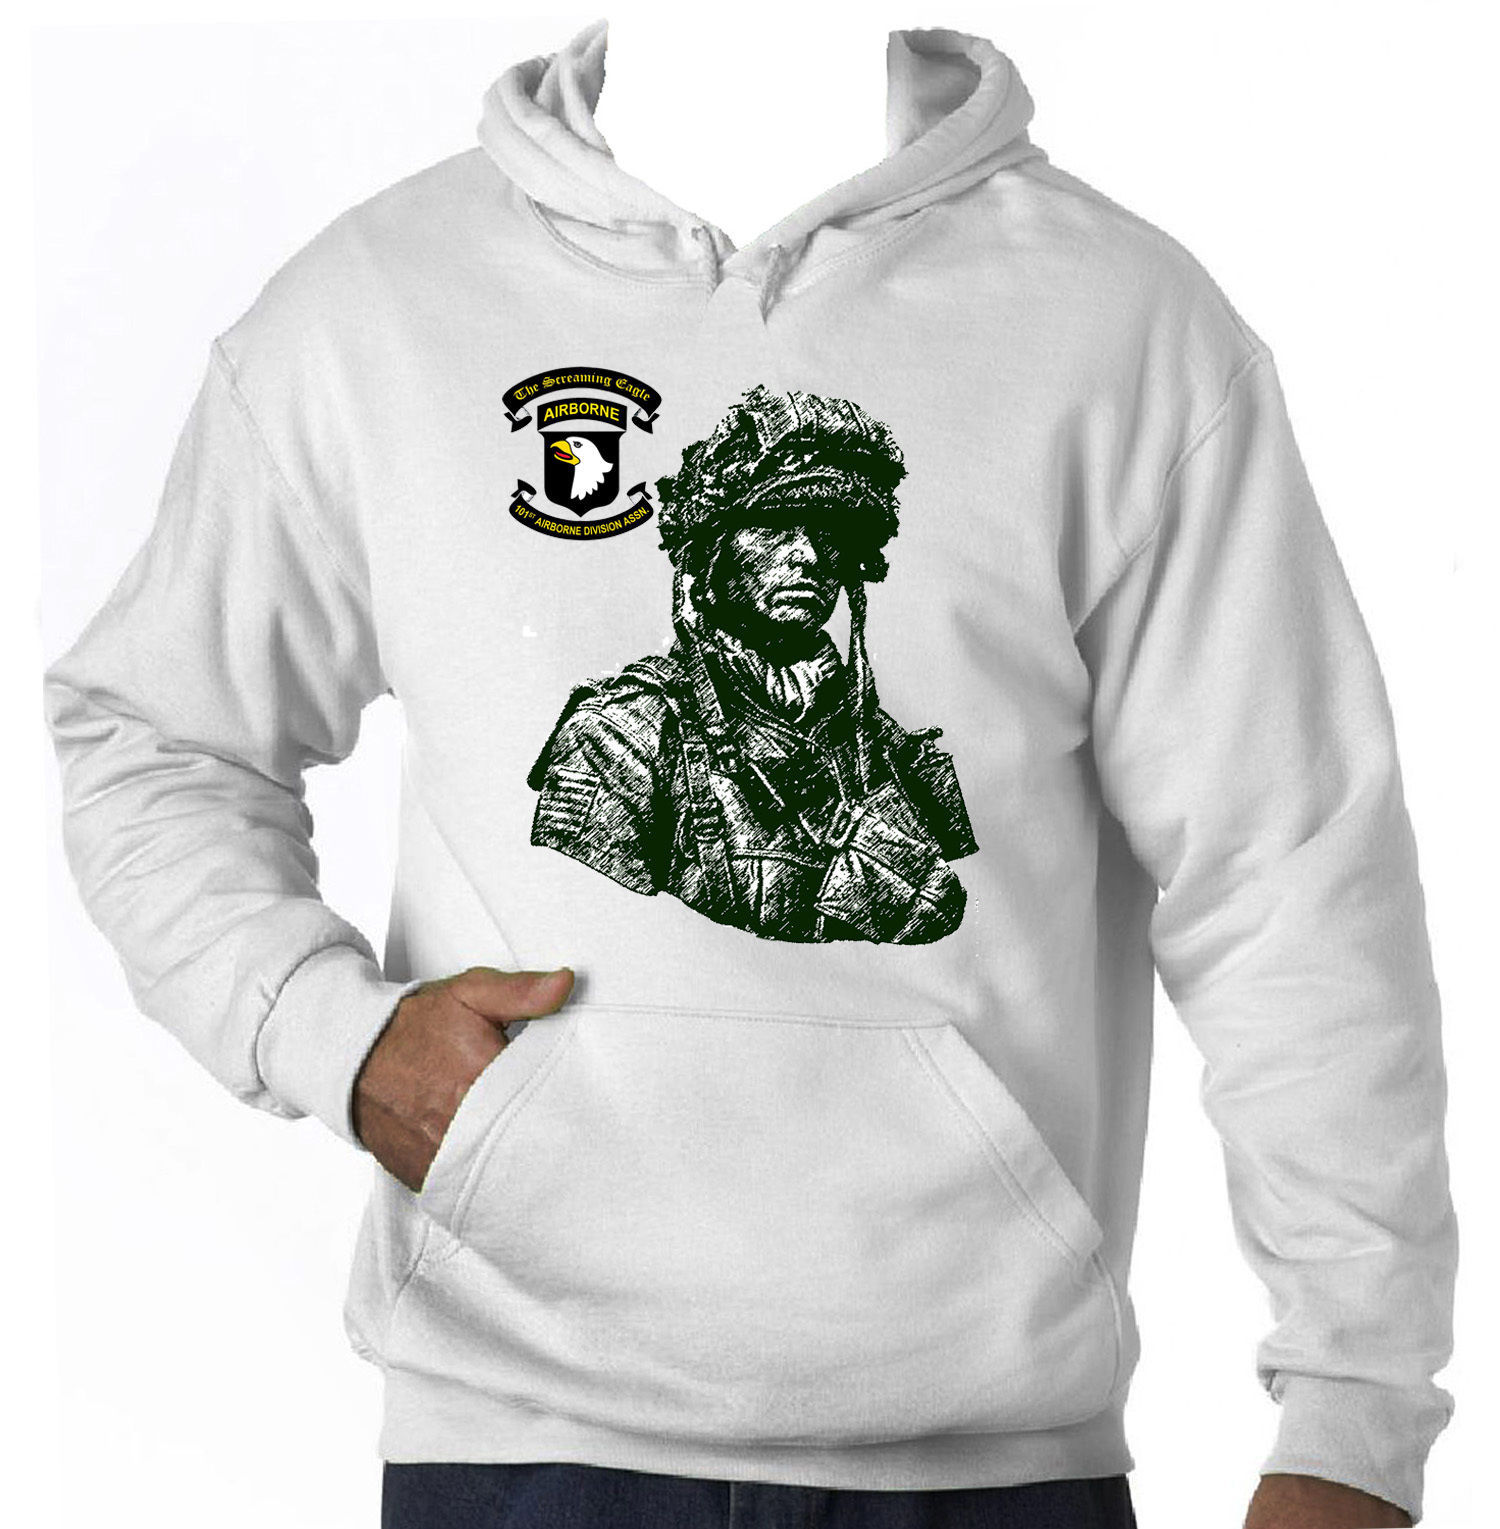 Primary image for 101ST AIRBORNE USA SPECIAL UNIT - NEW COTTON HOODIE S-M-L-XL-XXL